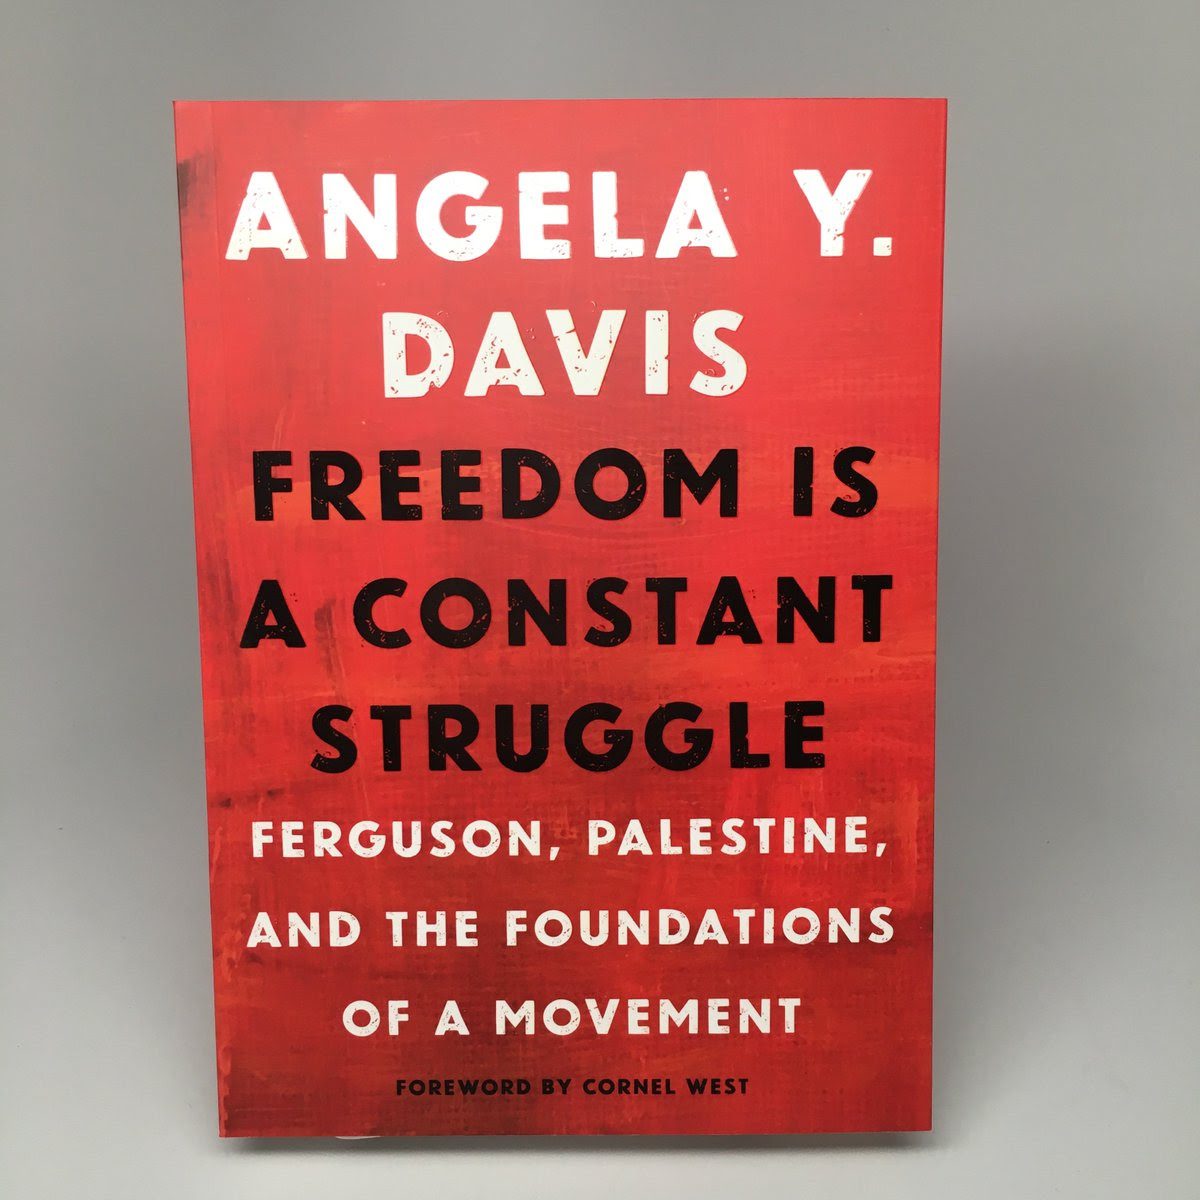 A copy of the book by Angela Y. Davis, Freedom is a Constant Struggle: Ferguson, Palestine, and the Foundations of a Movement, Foreward by Cornel West